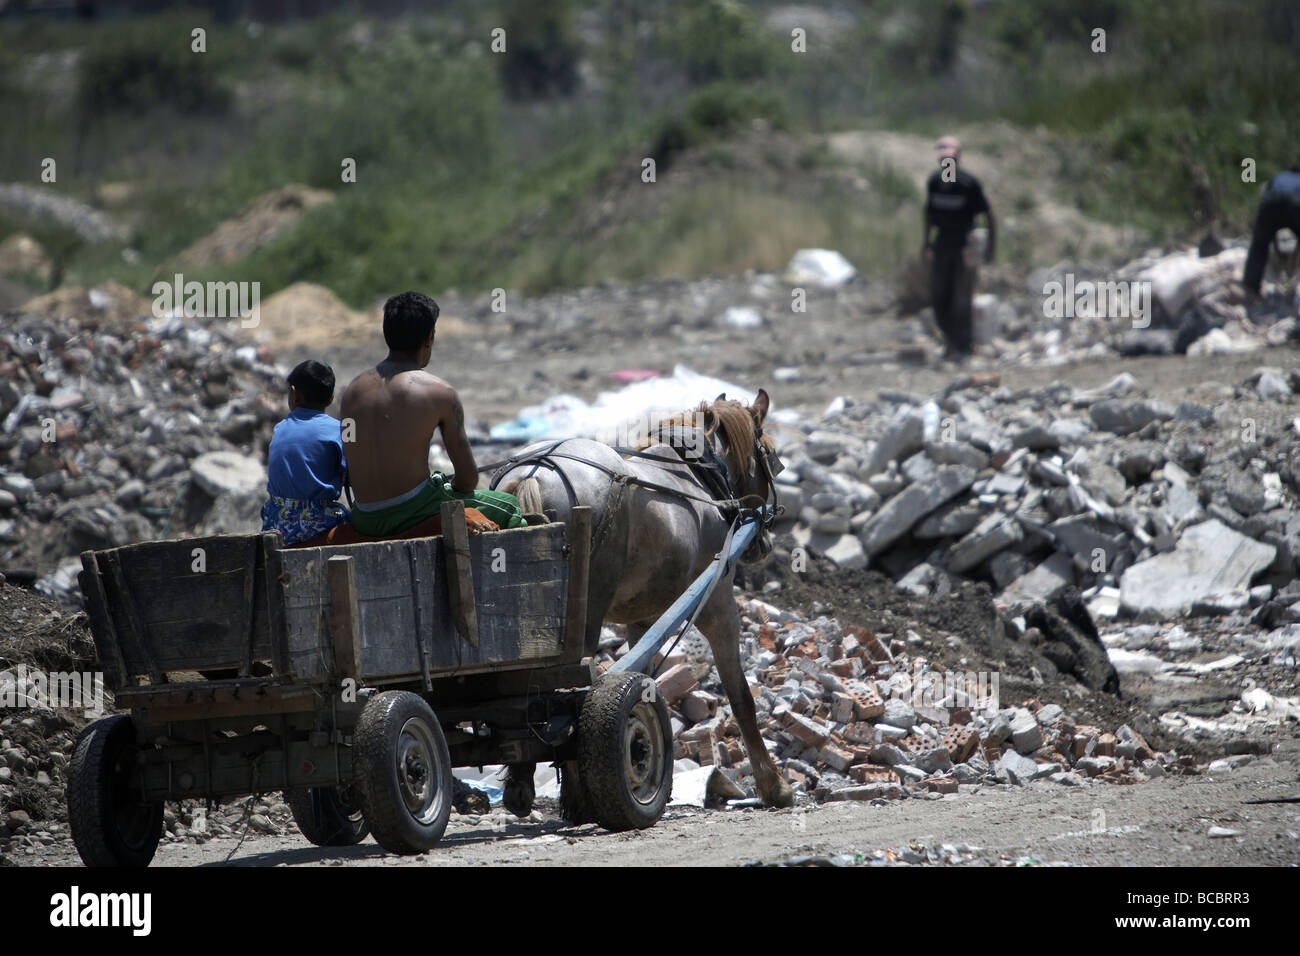 Adults and children scavenging for rubbish using a horse and cart Samokov Bulgaria - Stock Image